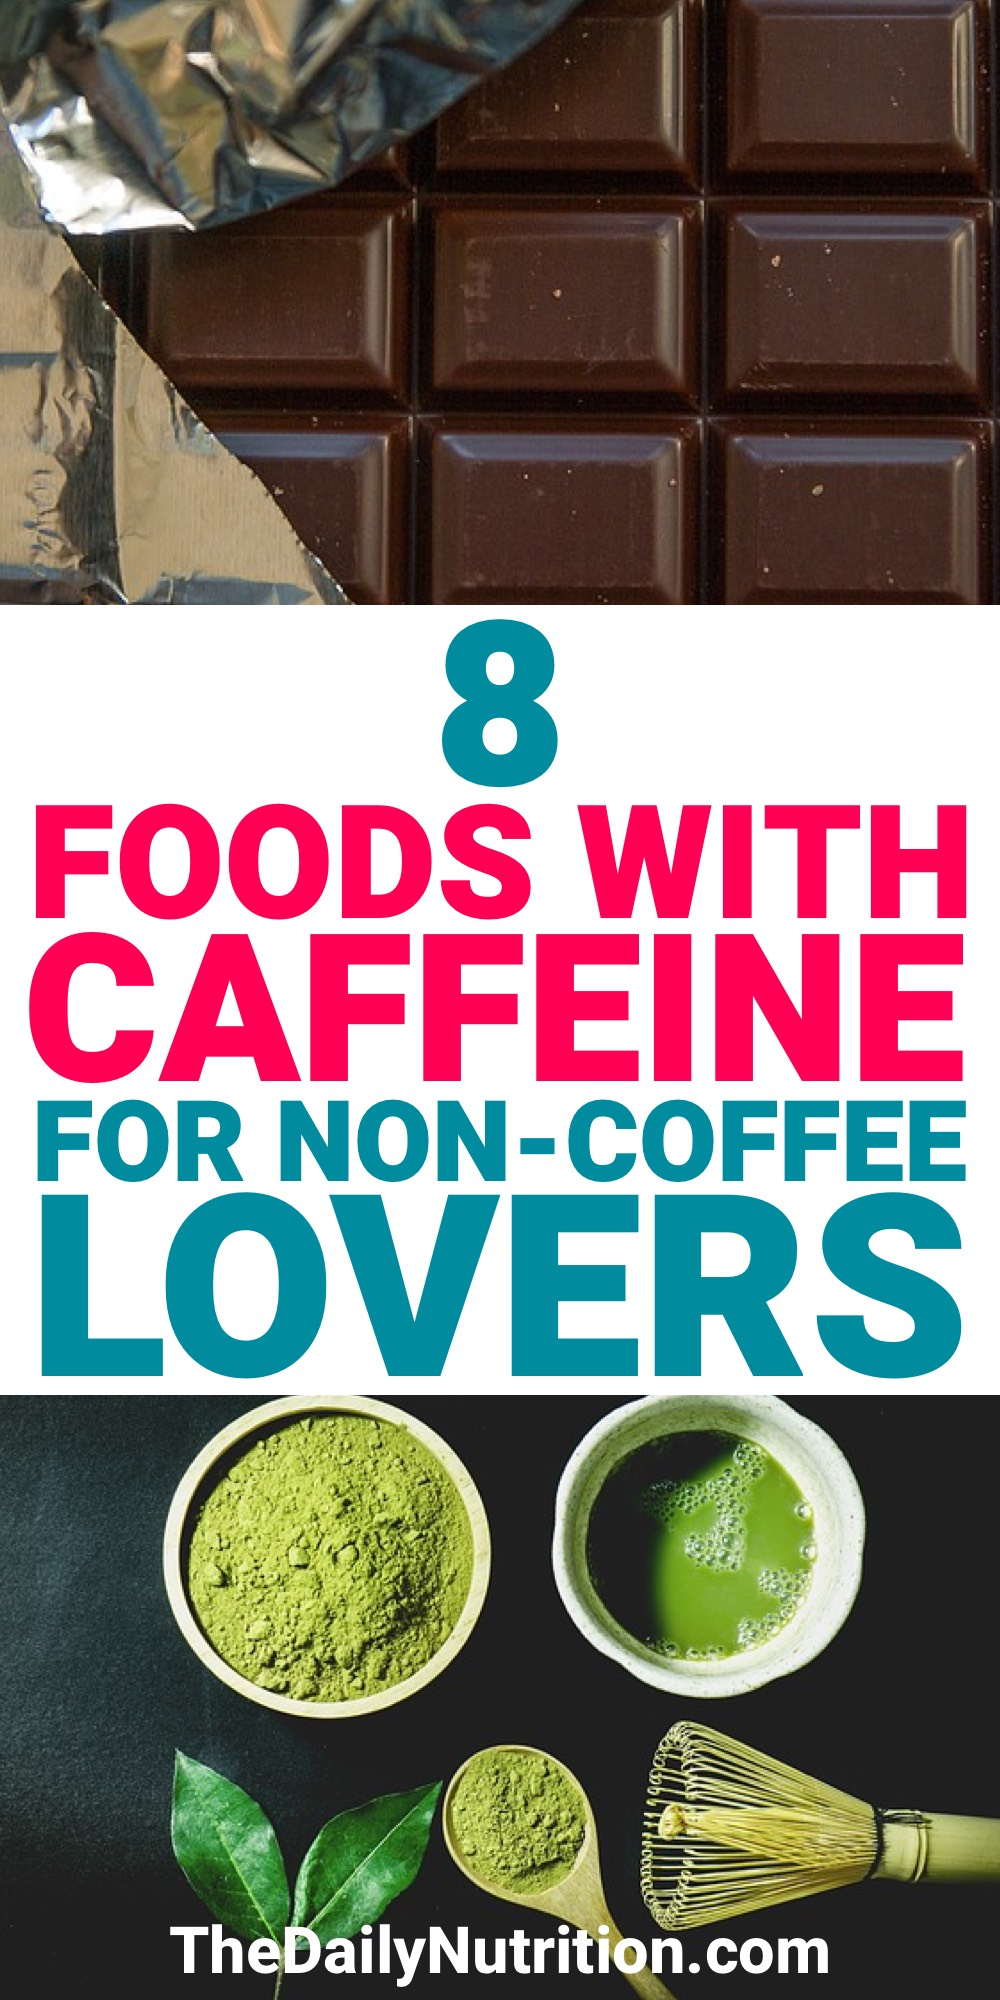 Caffeine is something people want. Here are foods that have caffeine.